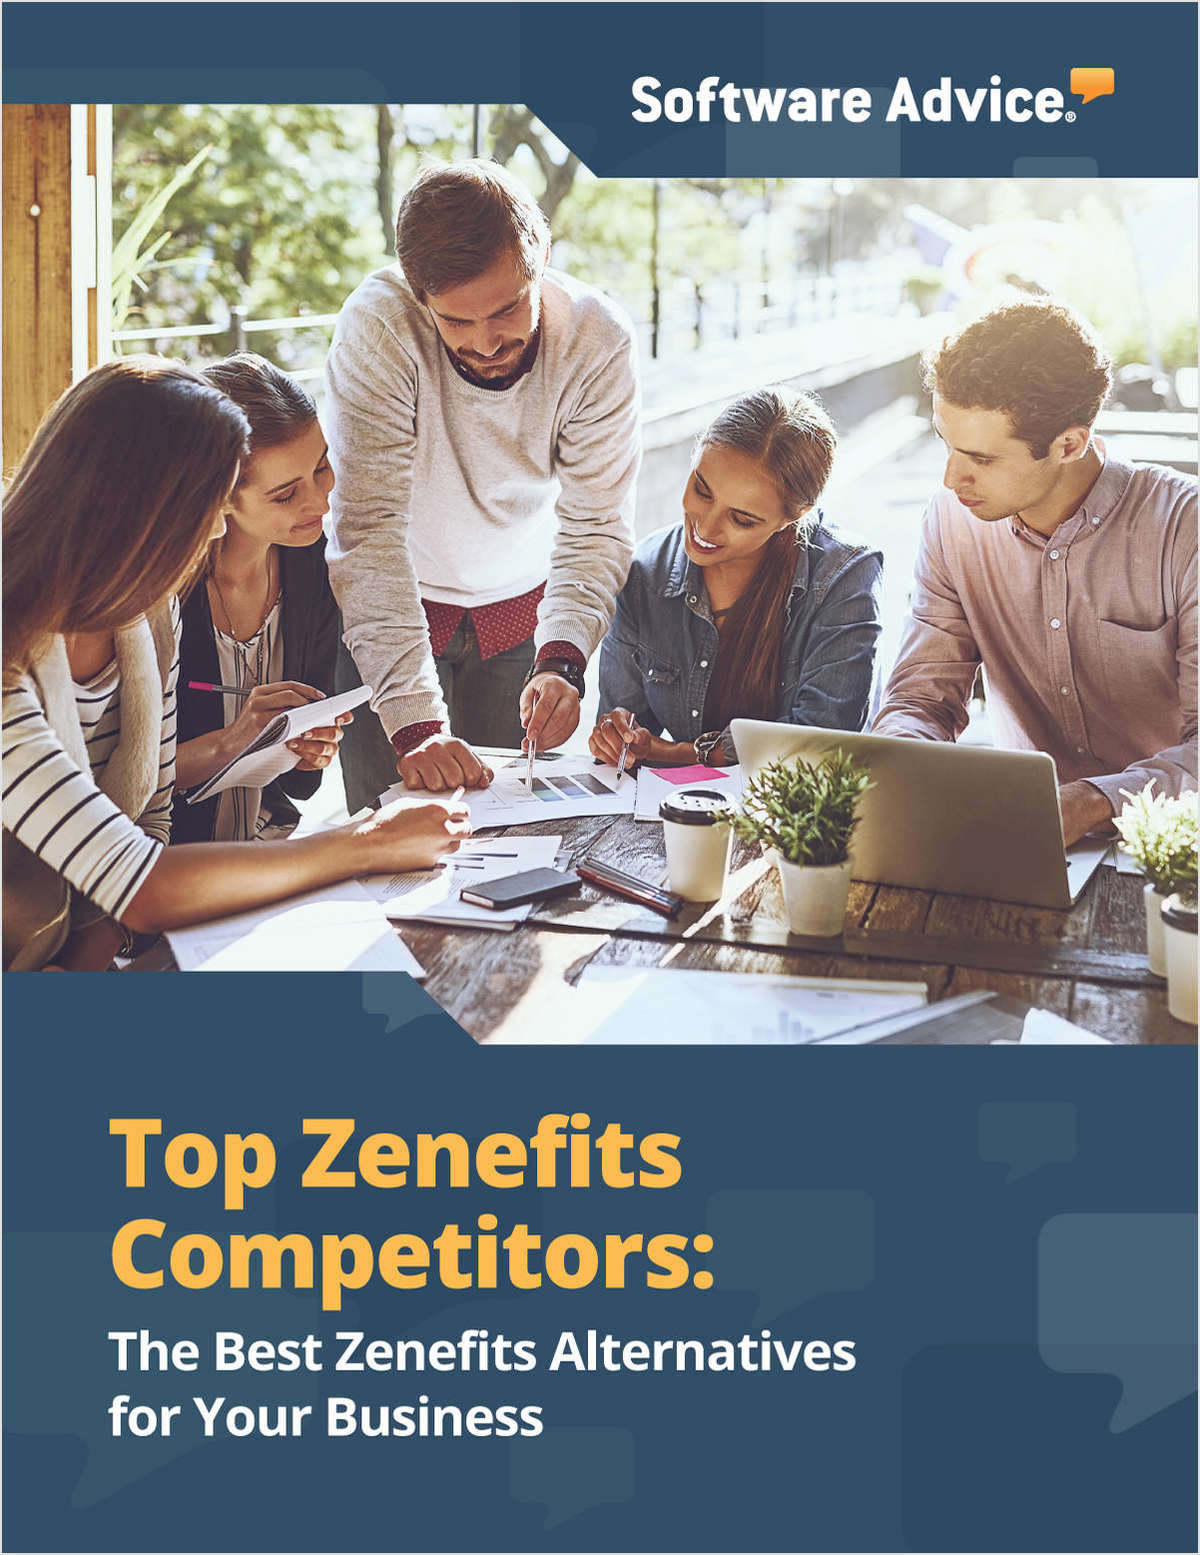 Top Recommended Zenefits Competitors and Alternatives